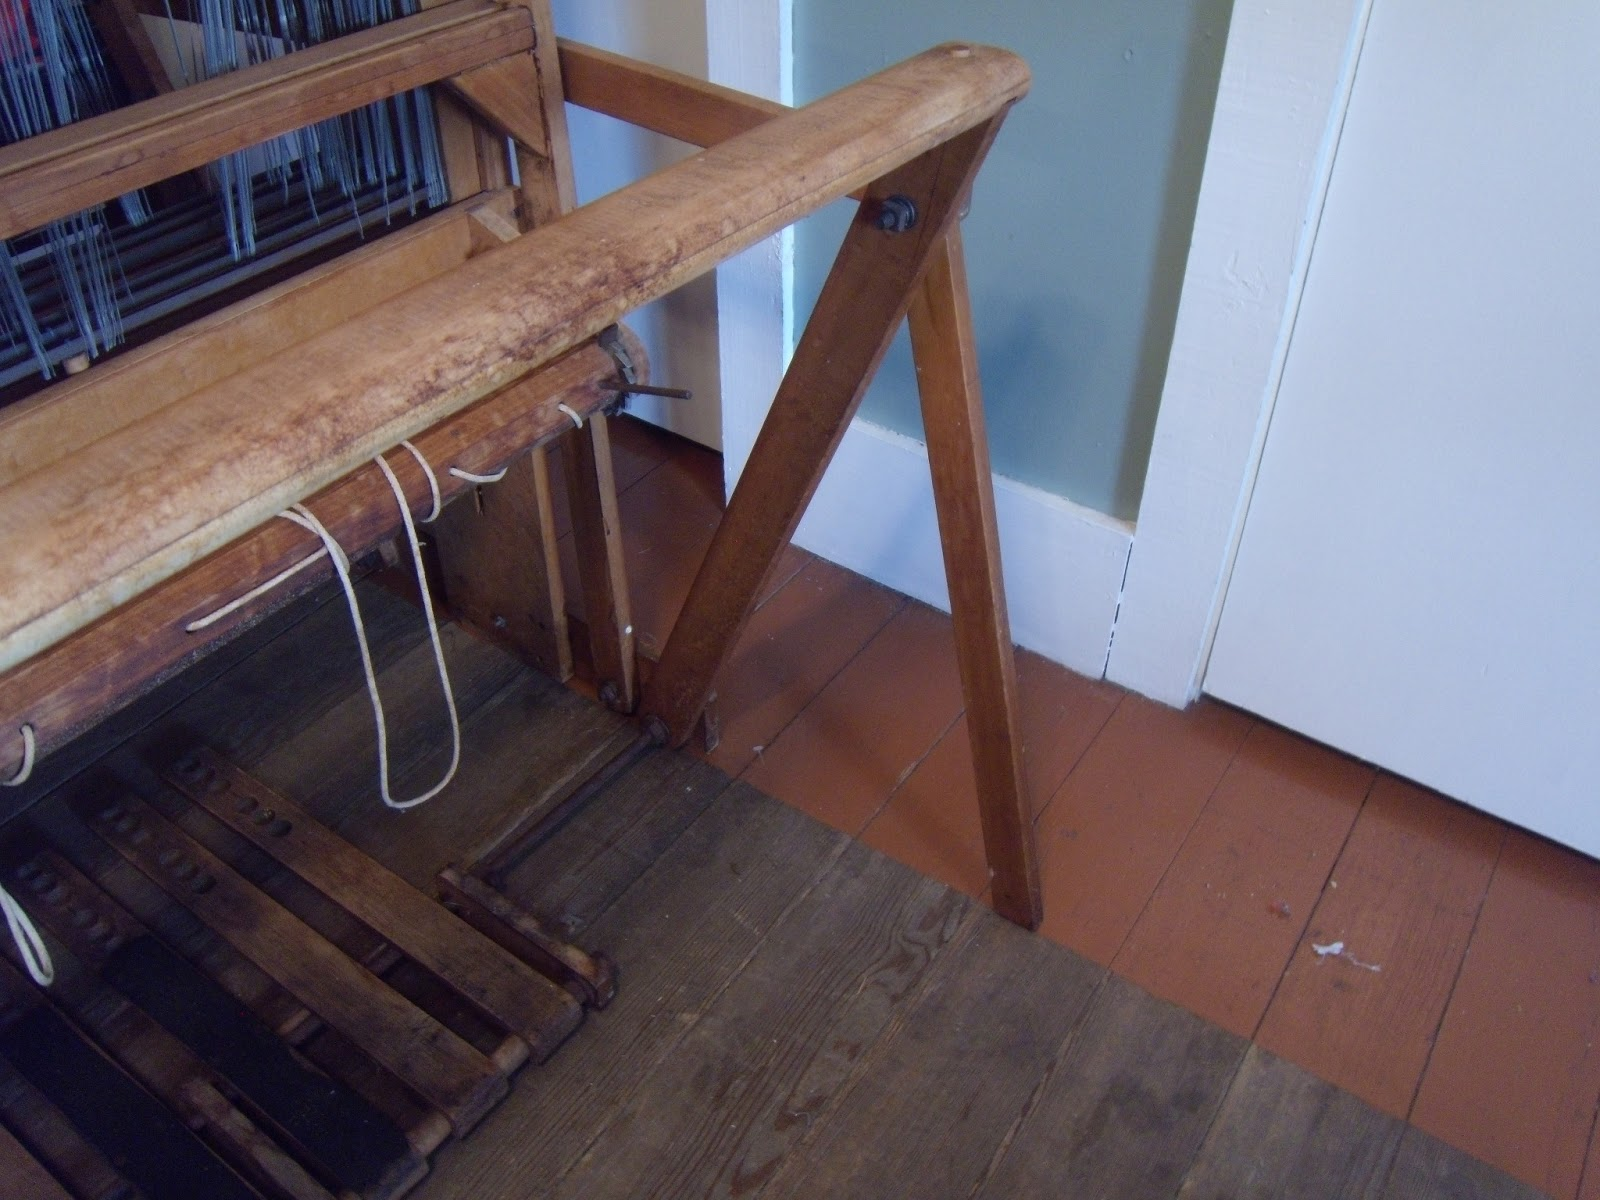 I have never seen a loom quite like this one, she folds up to save space if  you need, but she is in no way a portable!